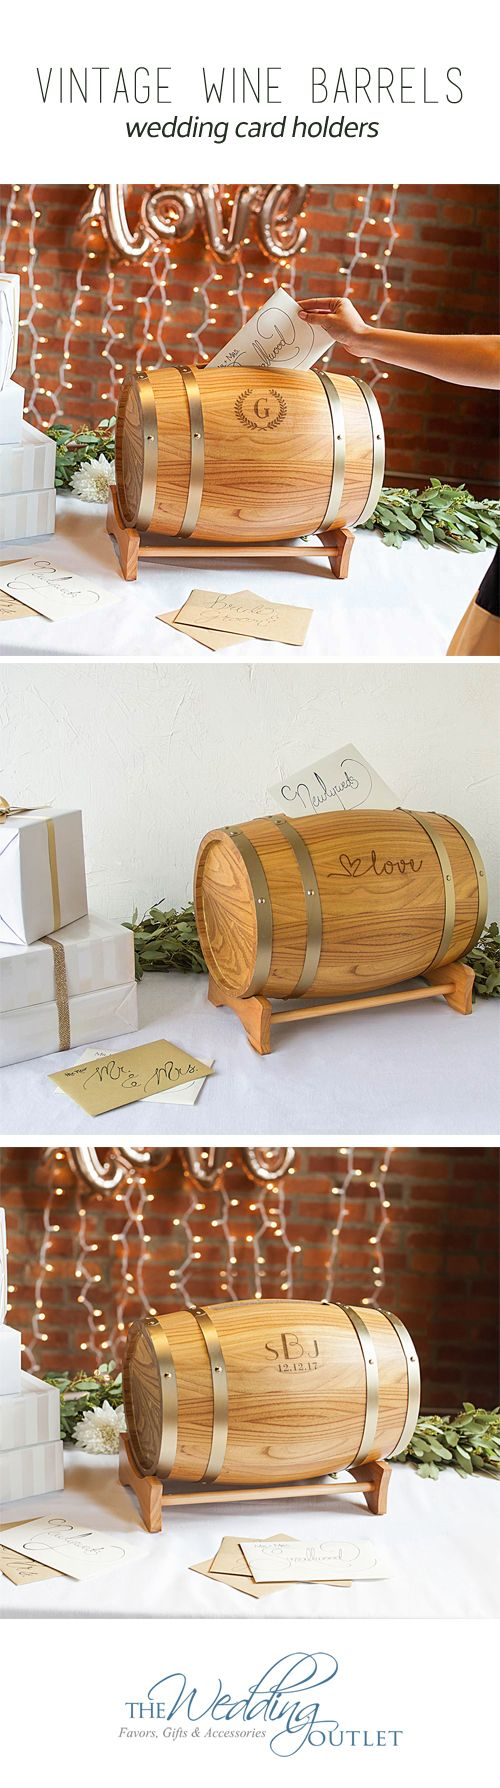 Best 25+ Wedding card boxes ideas on Pinterest | Card boxes, Diy ...